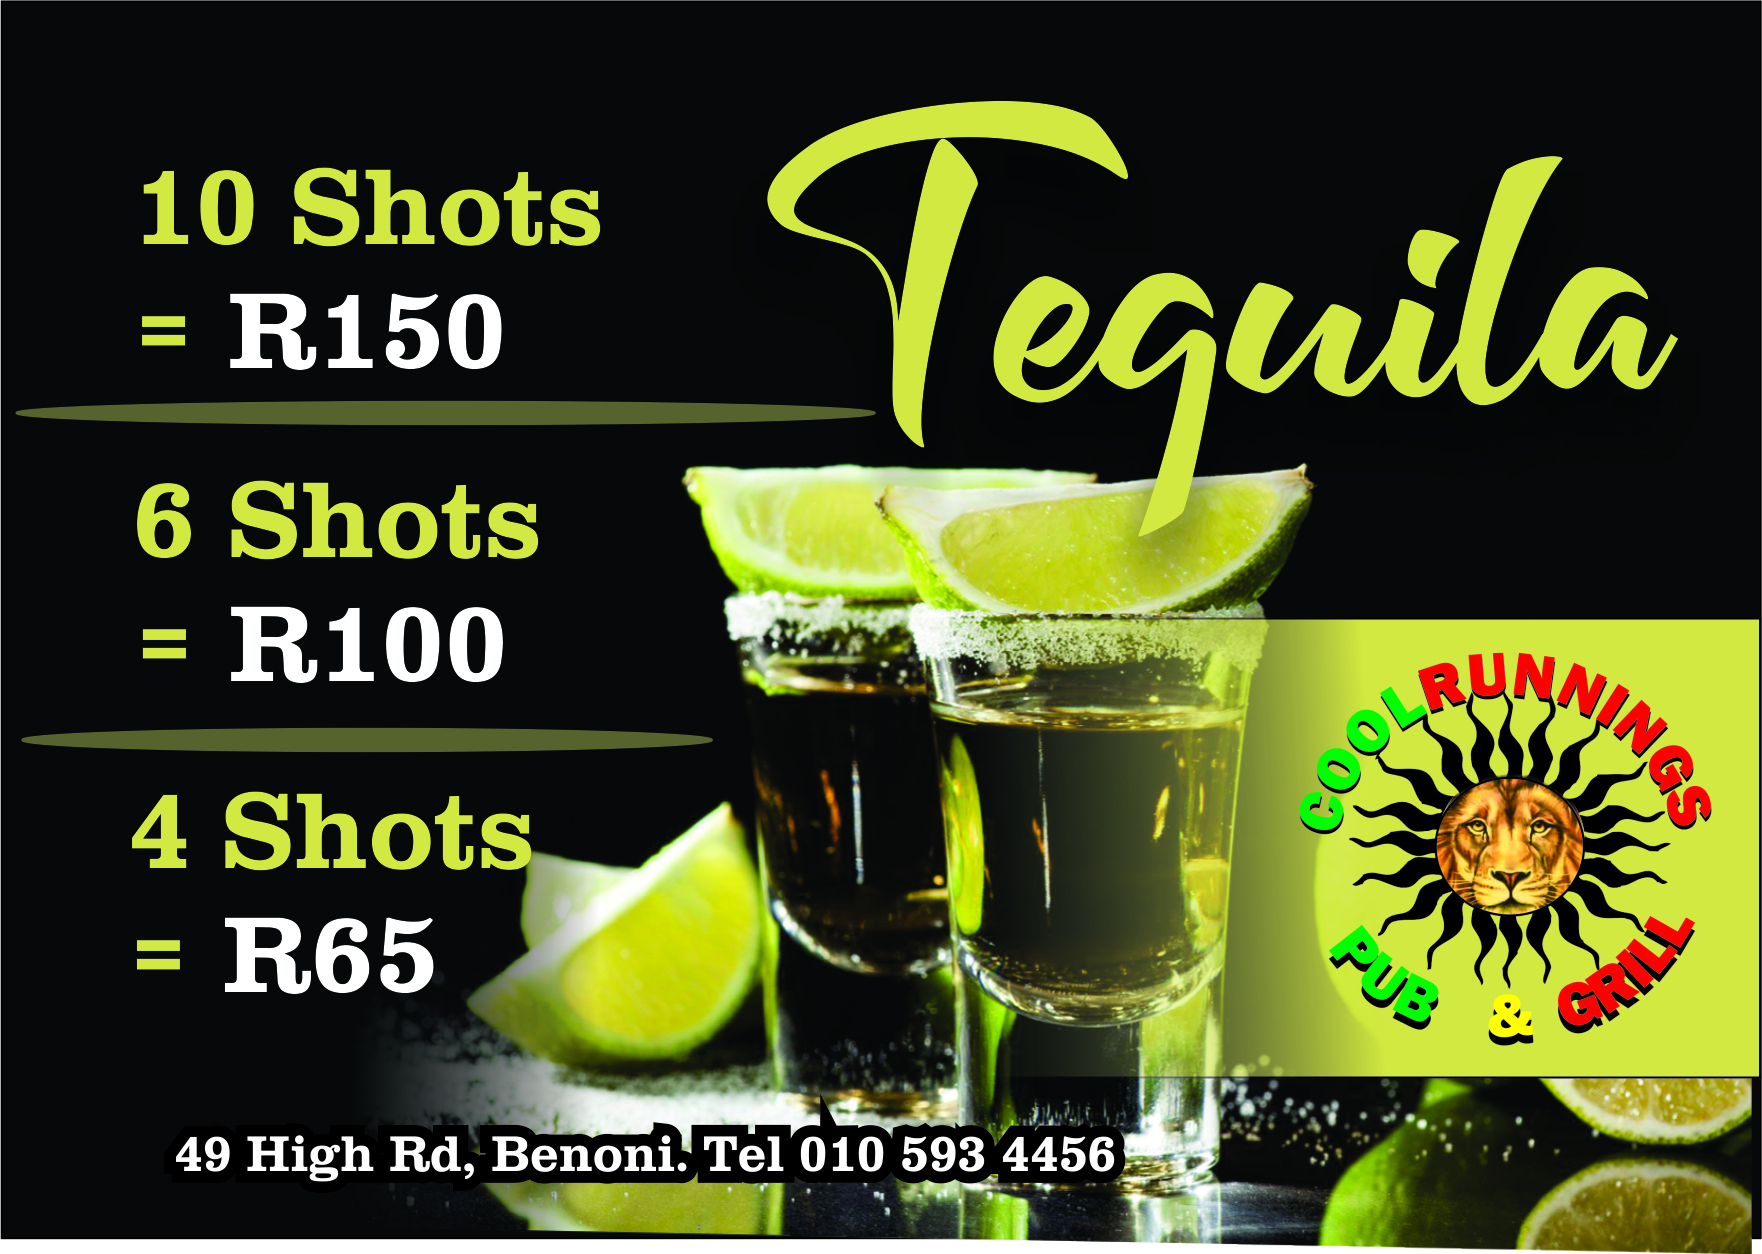 Tequila special